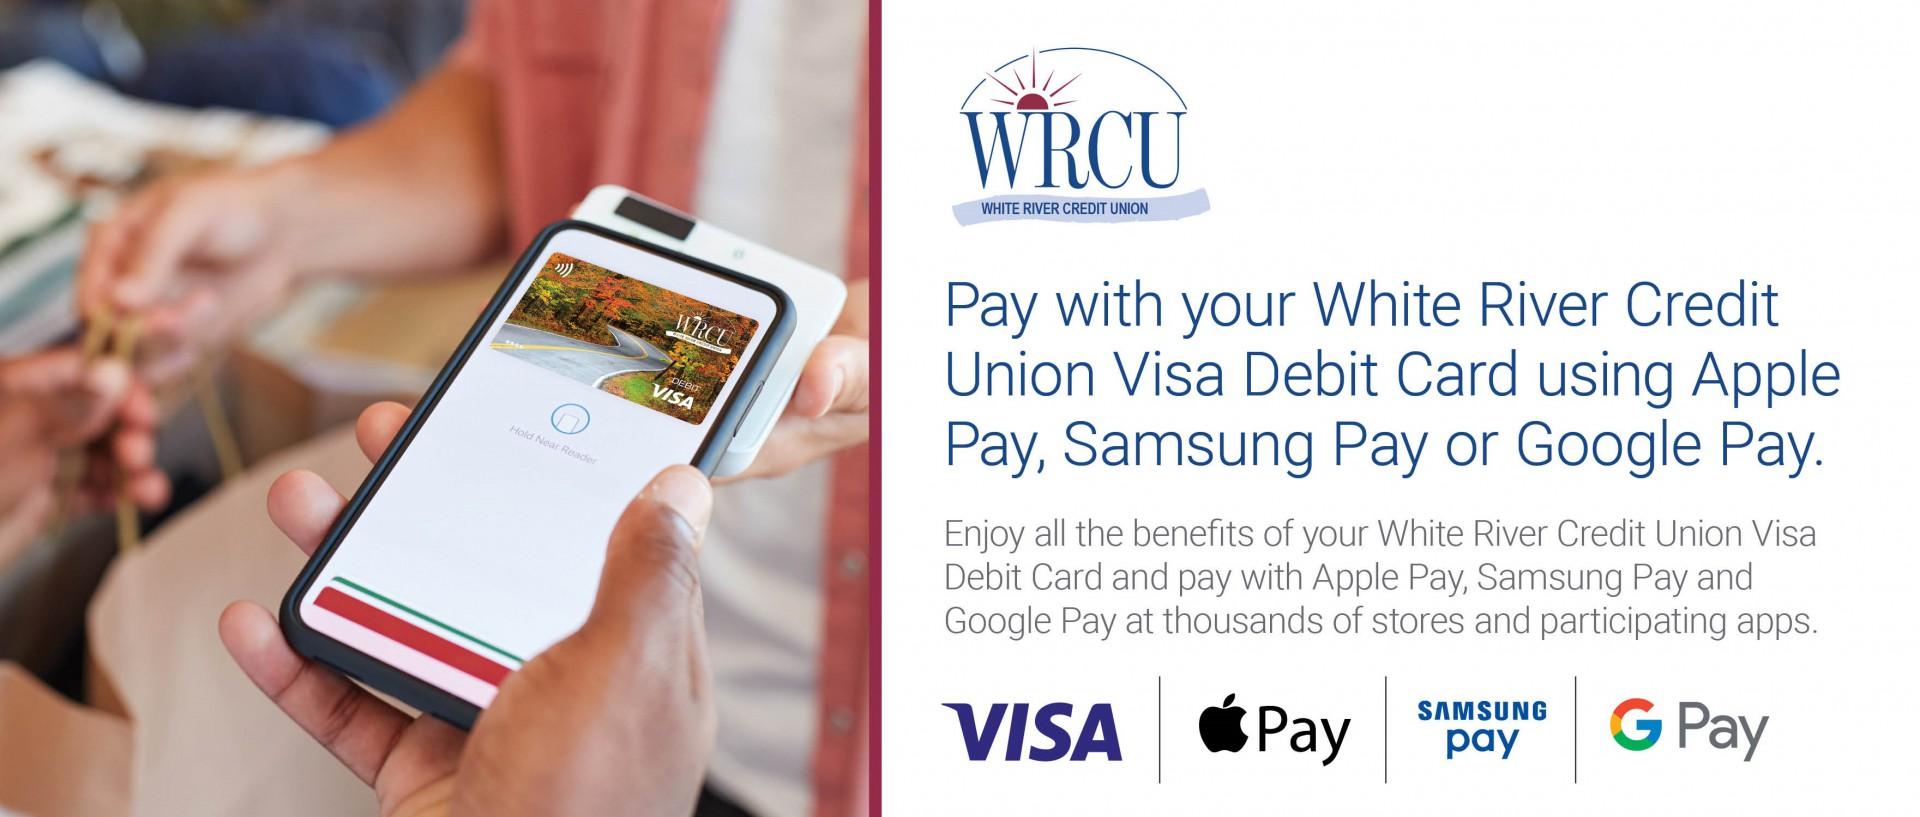 Add your card to your mobile wallet now!